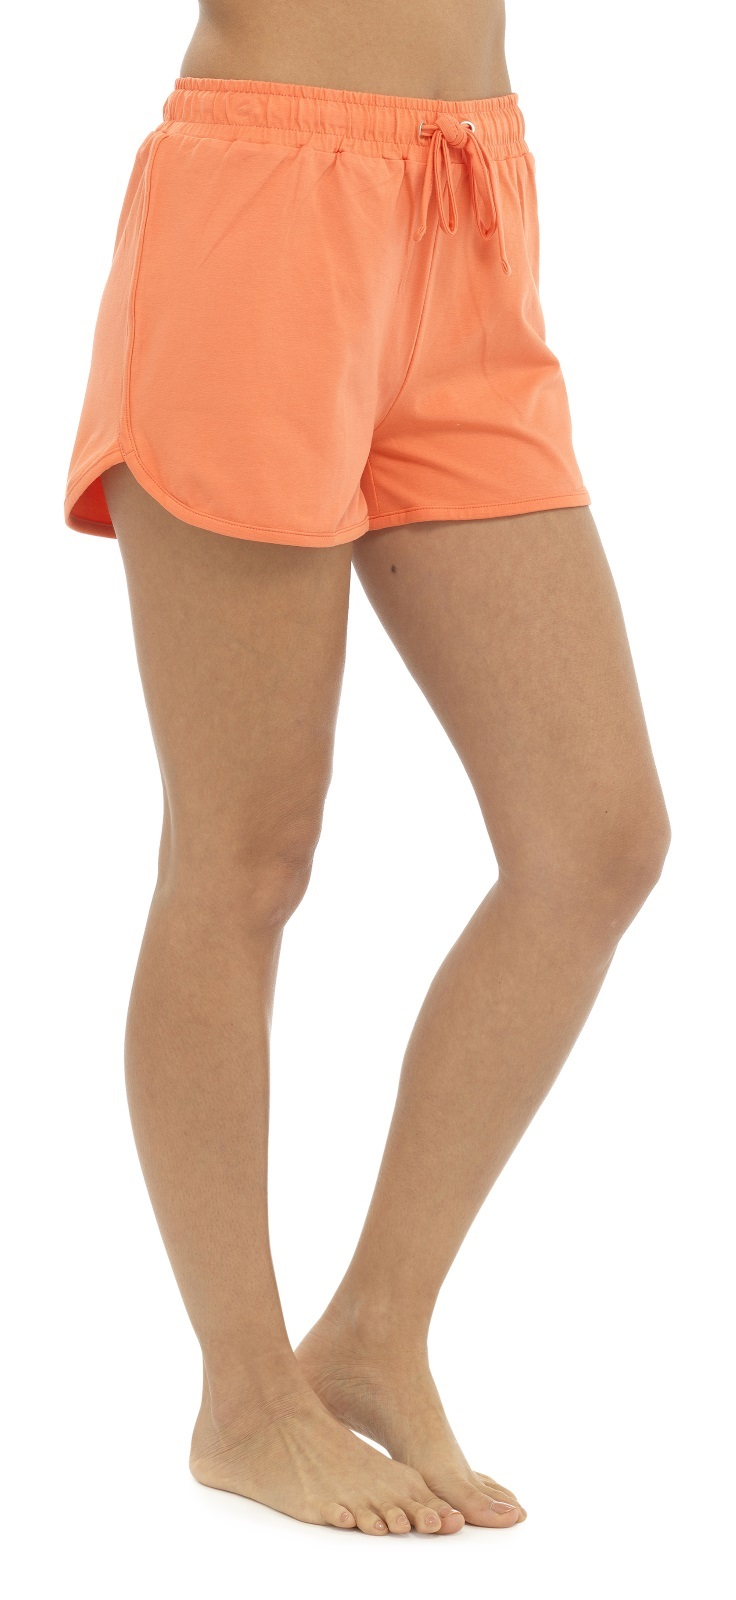 Find great deals on eBay for womens white cotton shorts. Shop with confidence.